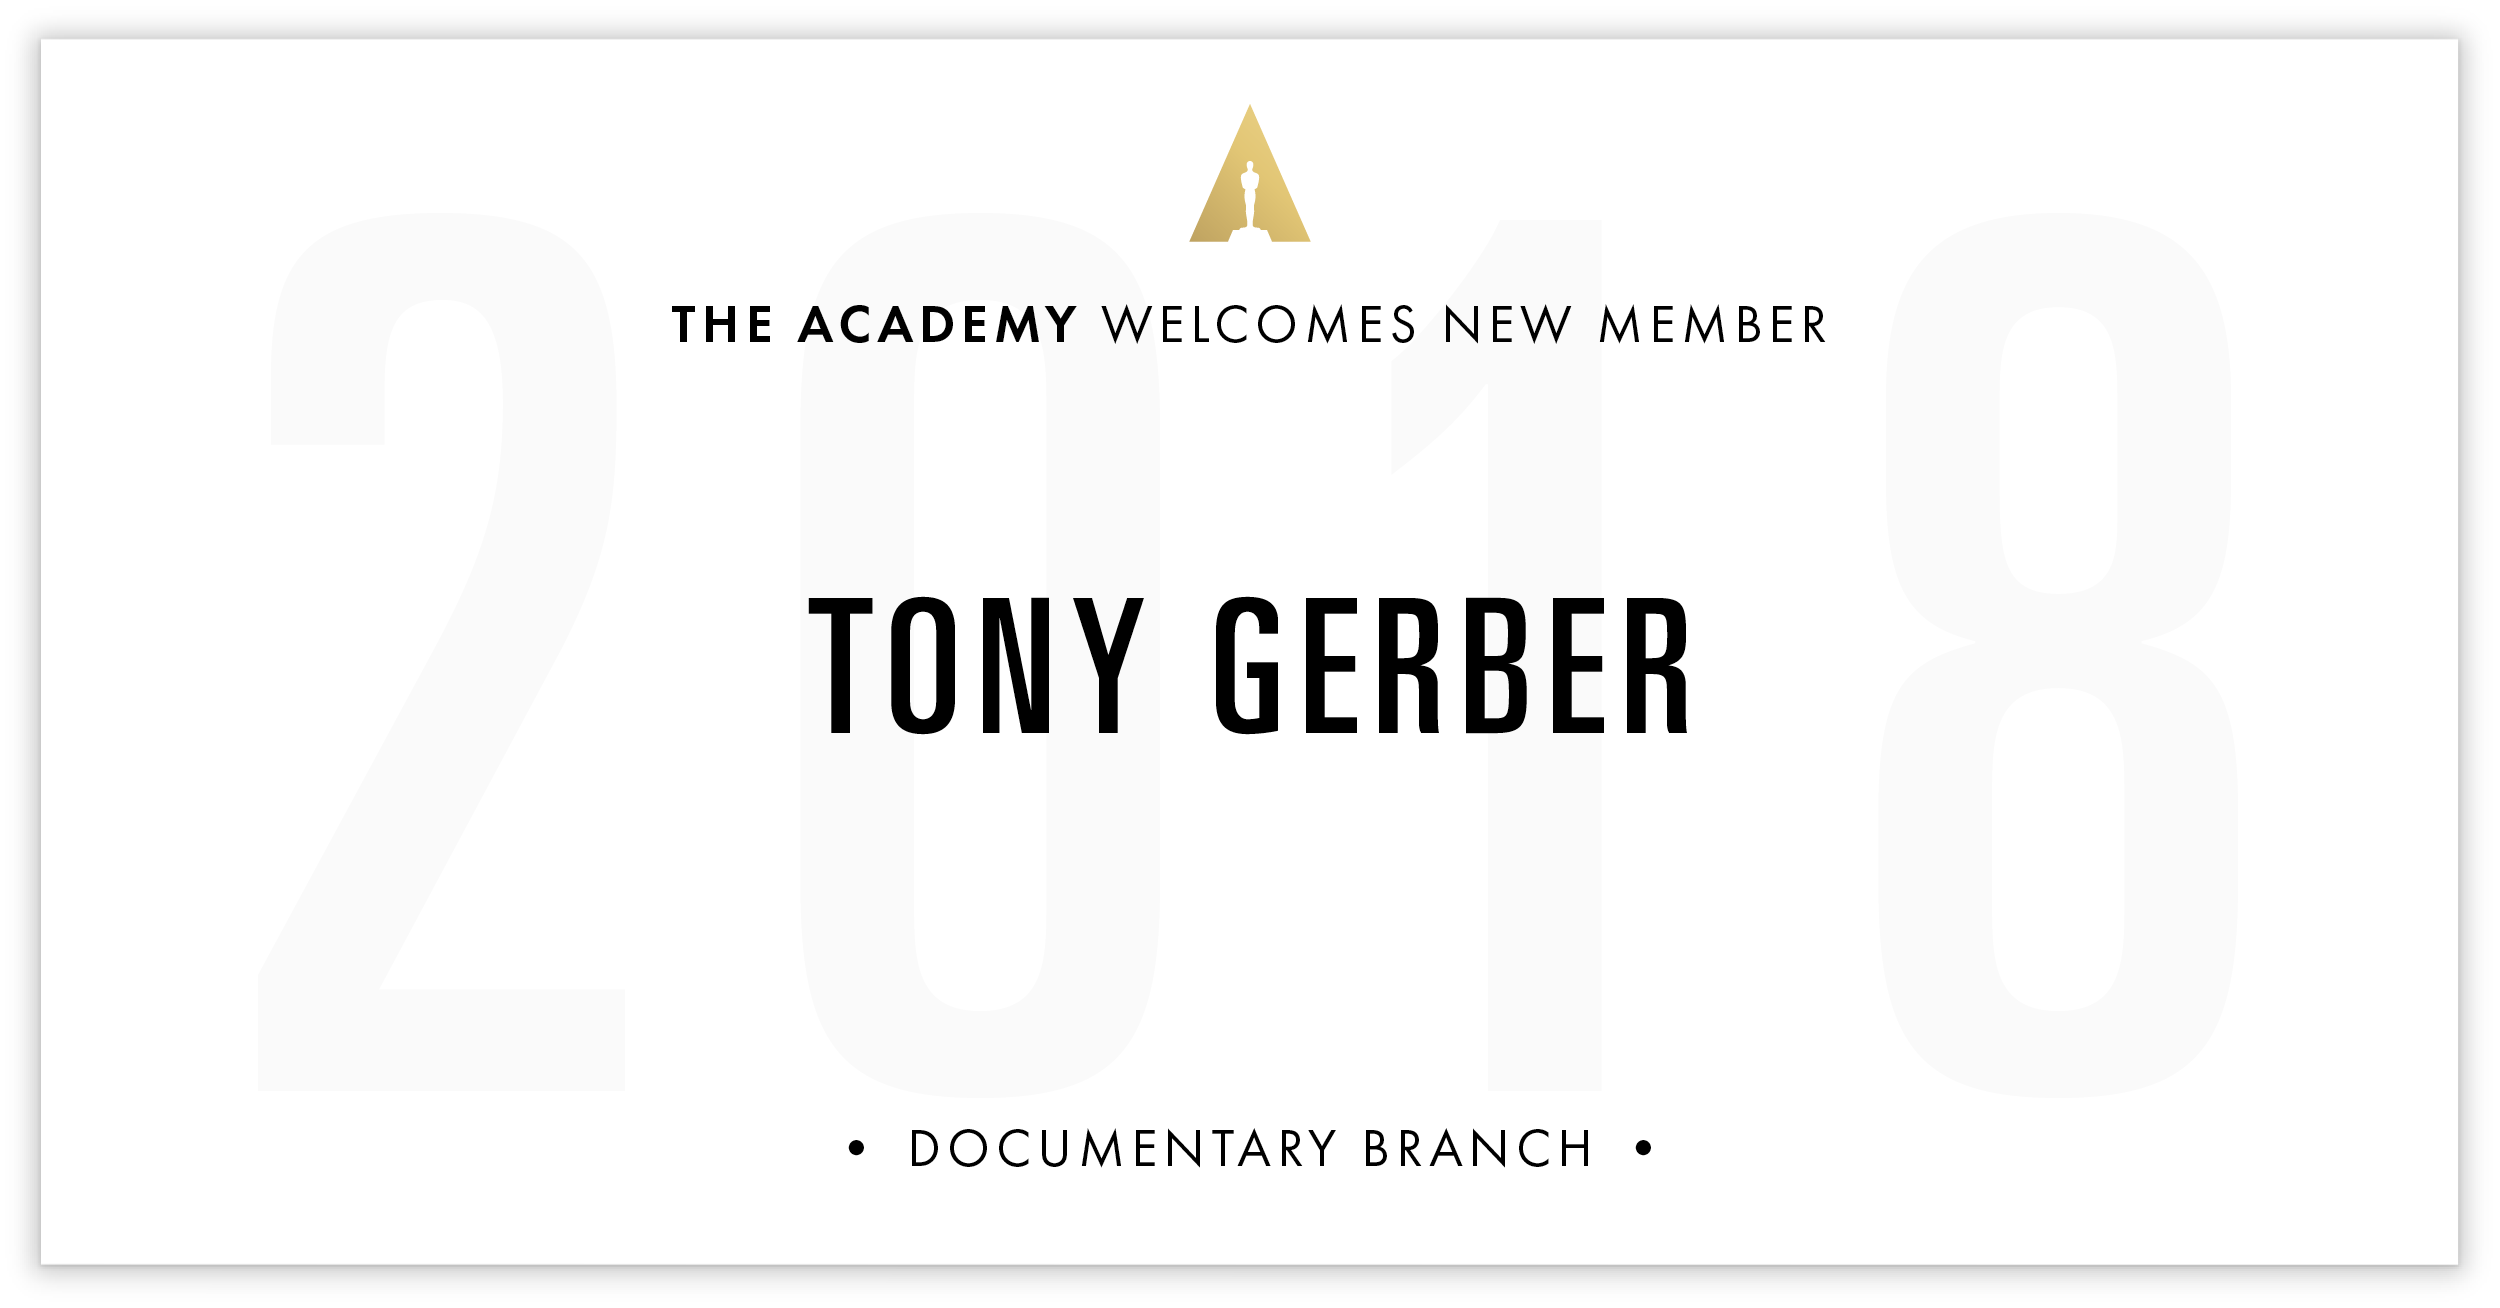 Tony Gerber is invited!